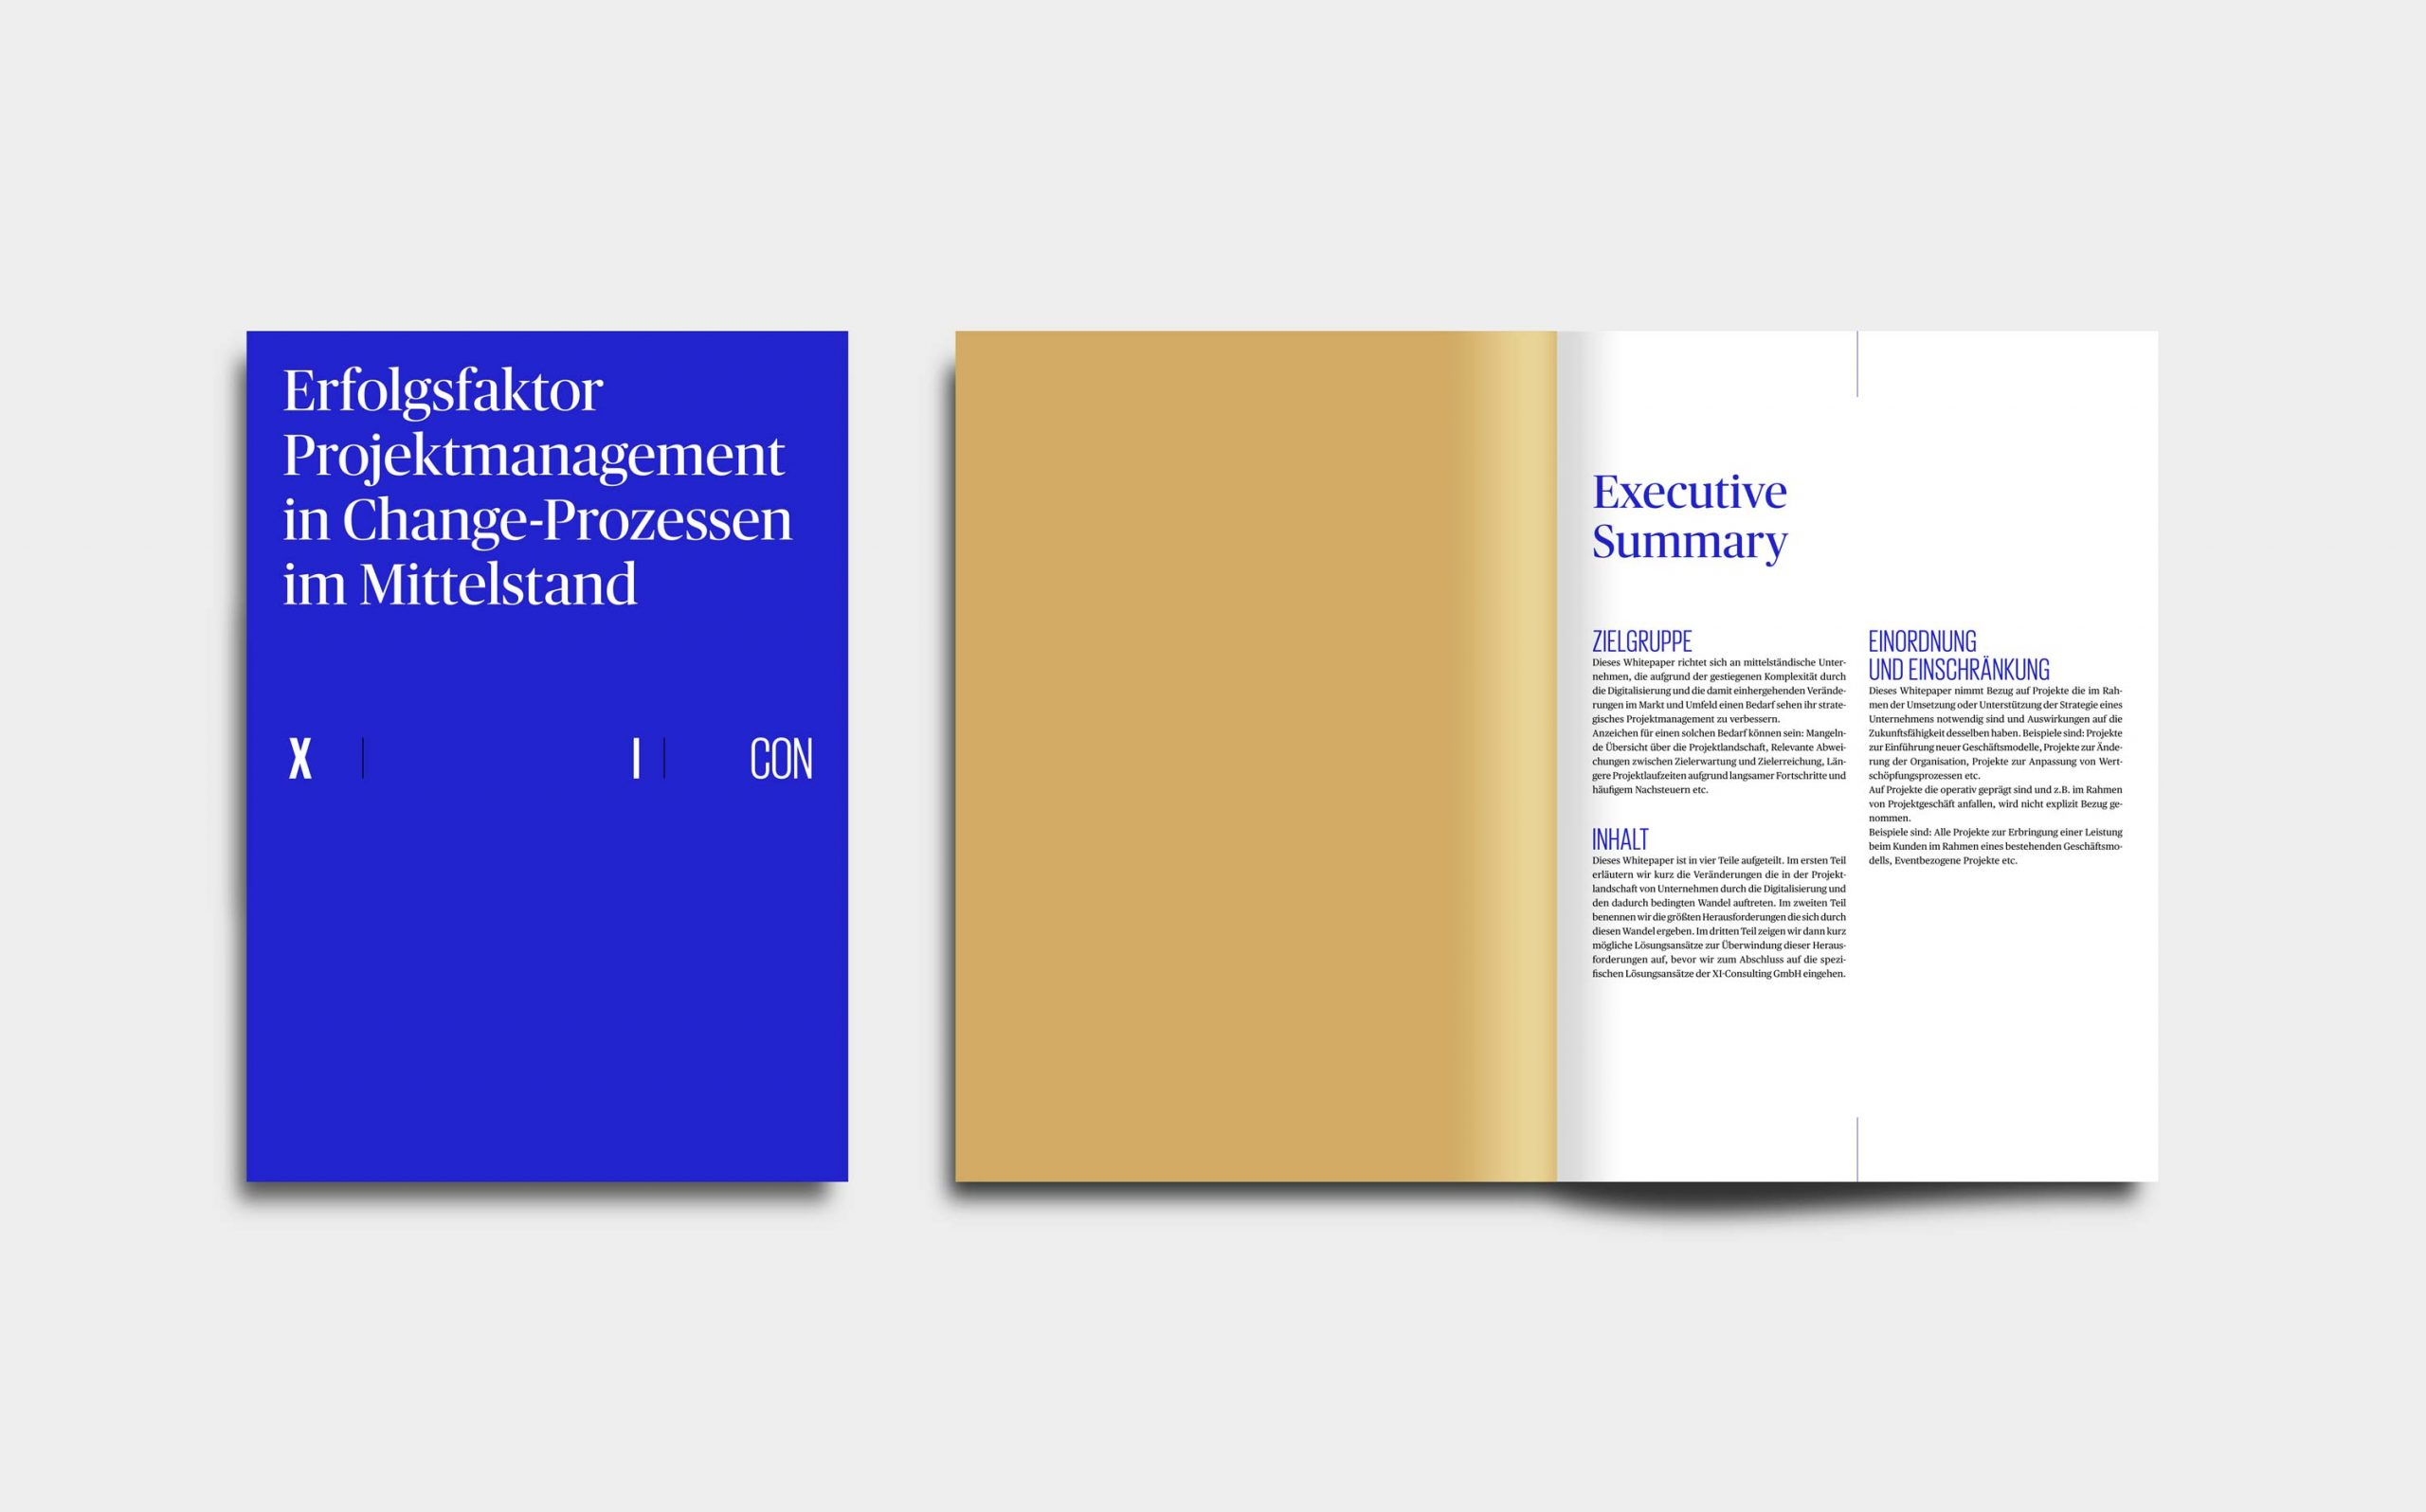 Cross Industry Consulting | Cover und Innenseiten des Projektmanagement Whitepapers in Signalblau, Gold und weiß | Keywords: Corporate Design, Logo, Grafikdesign, Design, Typografie, Whitepaper, Strategie, Beratung